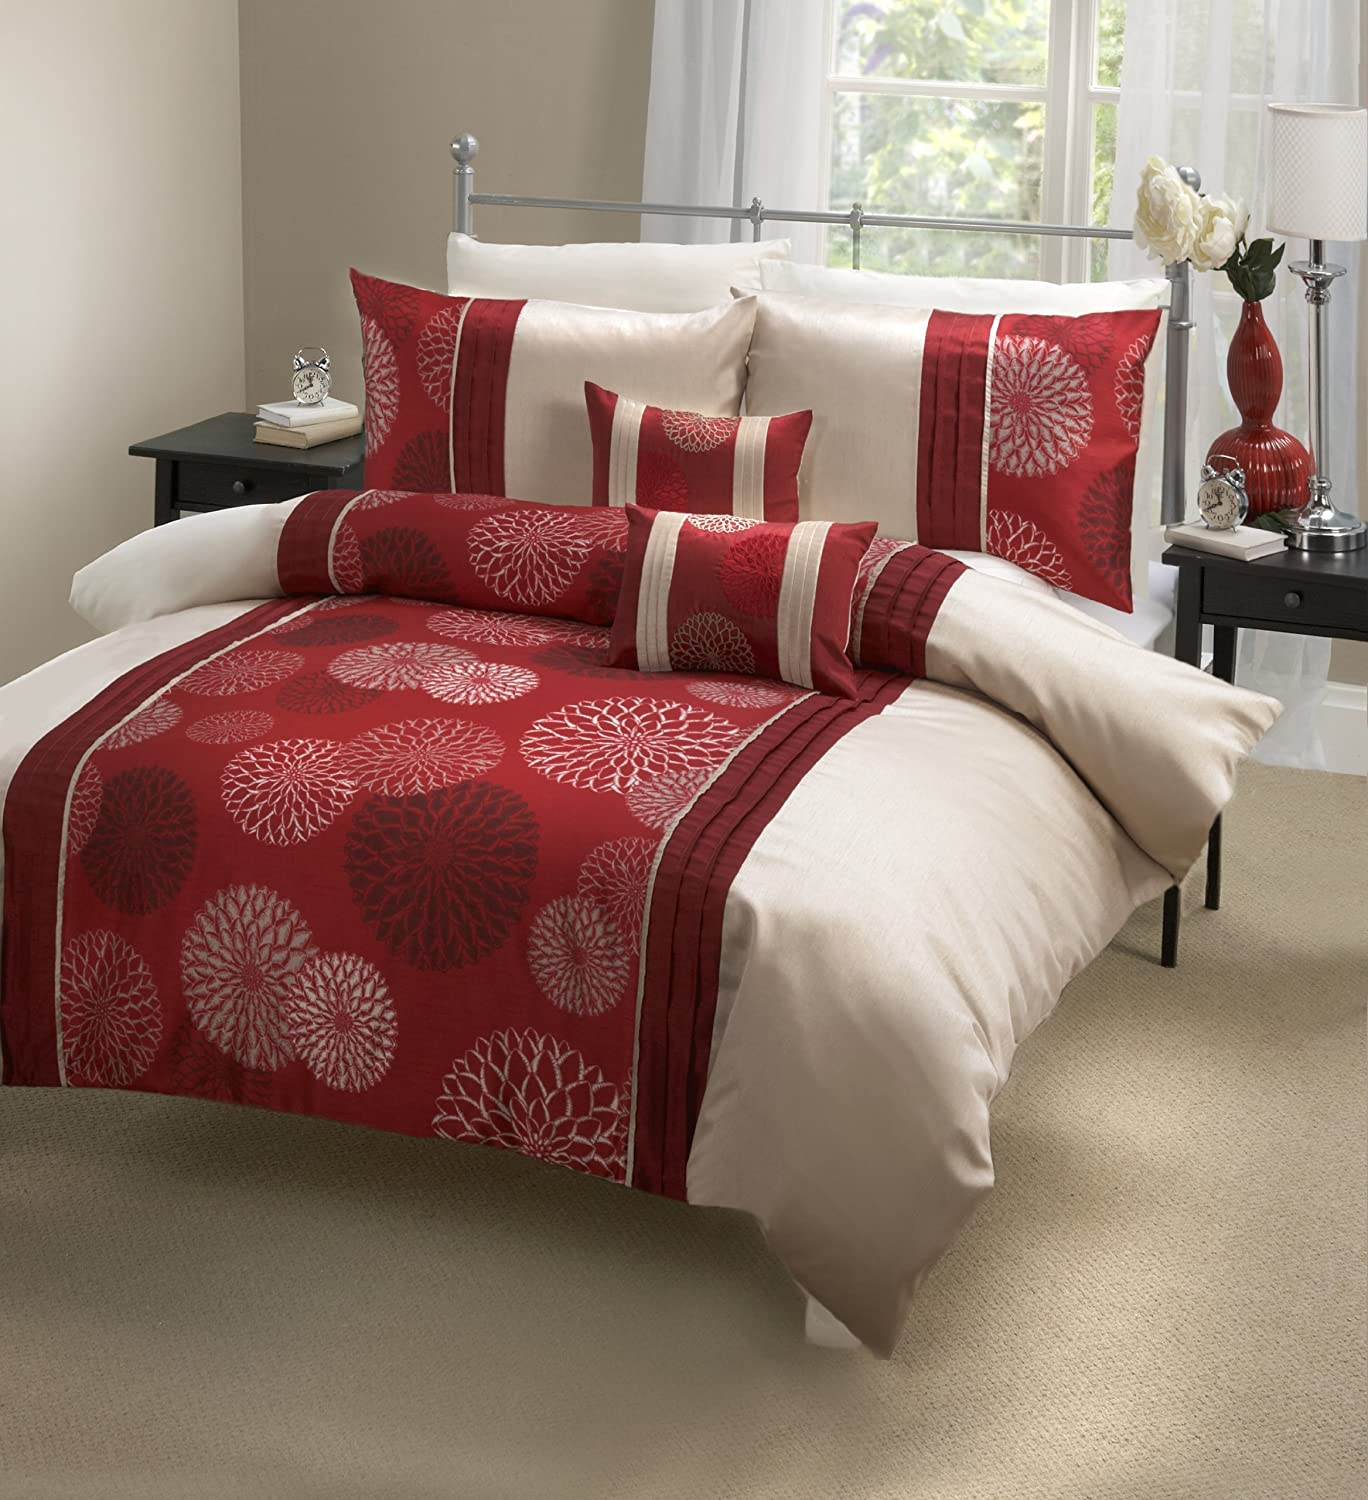 Marseille Single Quilt Set with Coordinating Pillows, Red Dreams & Drapes MLERD11PPD